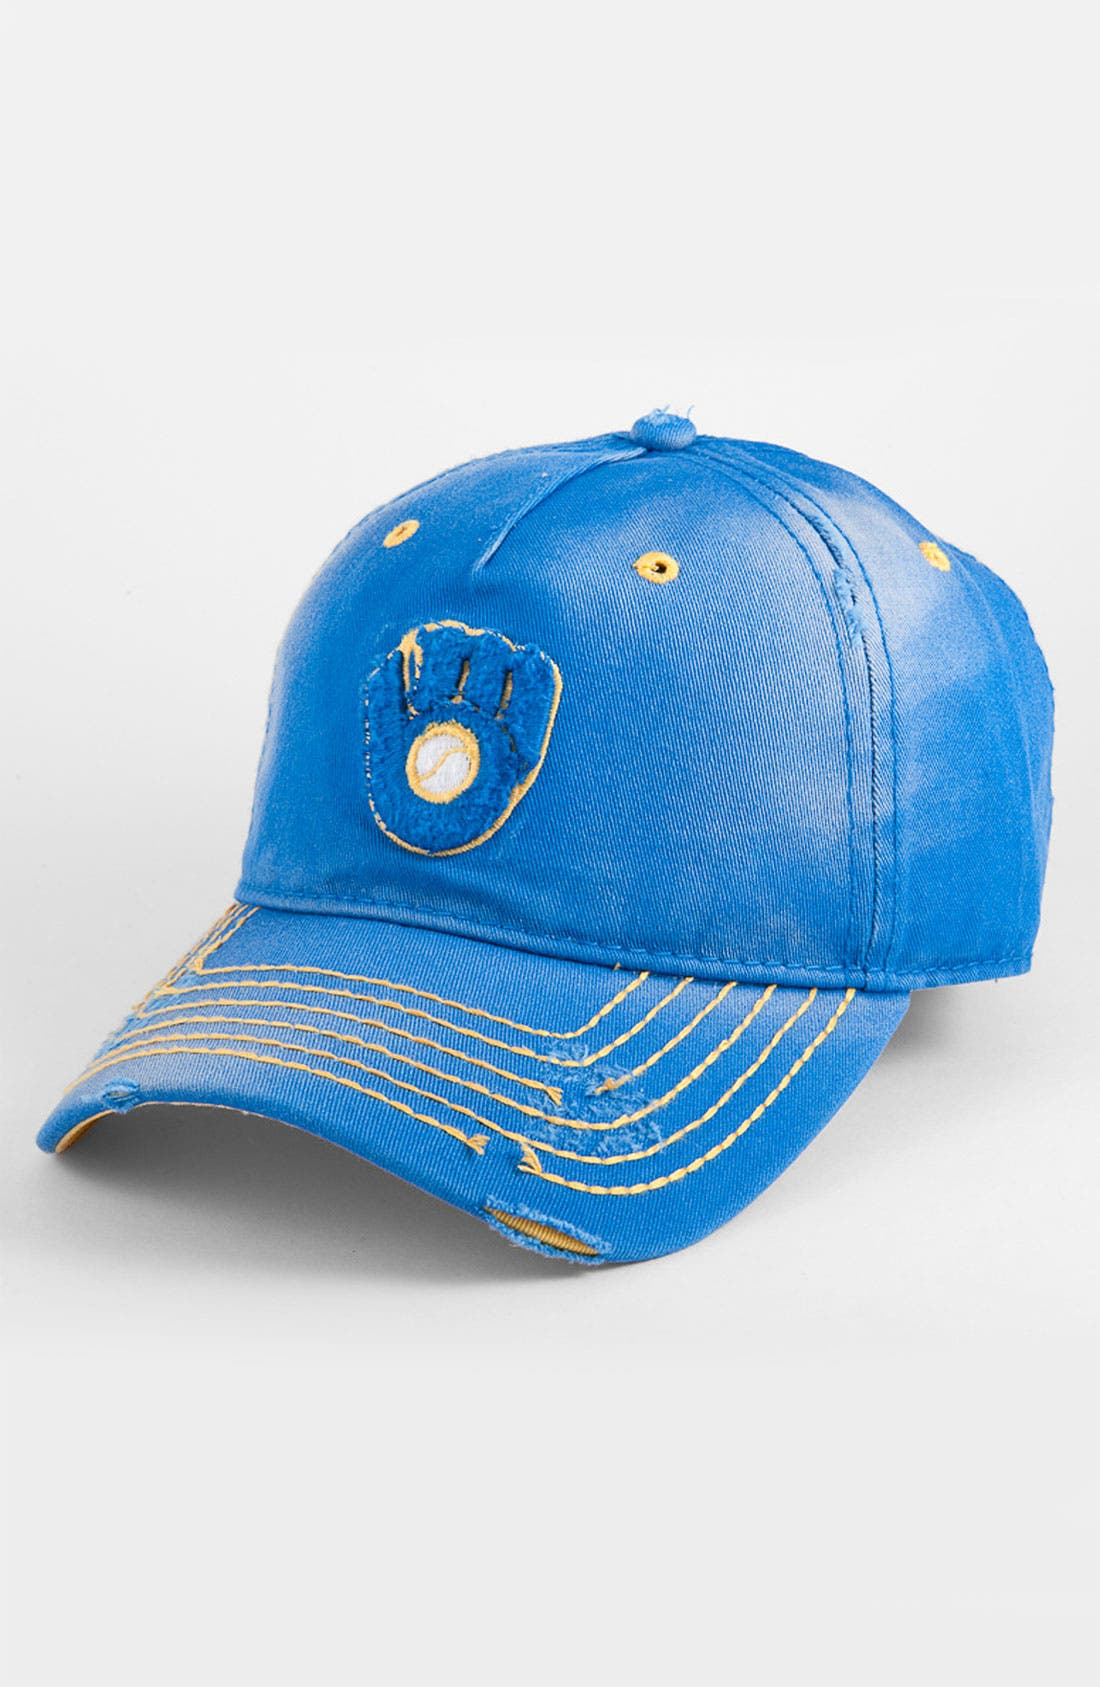 Alternate Image 1 Selected - American Needle 'Brewers' Baseball Cap